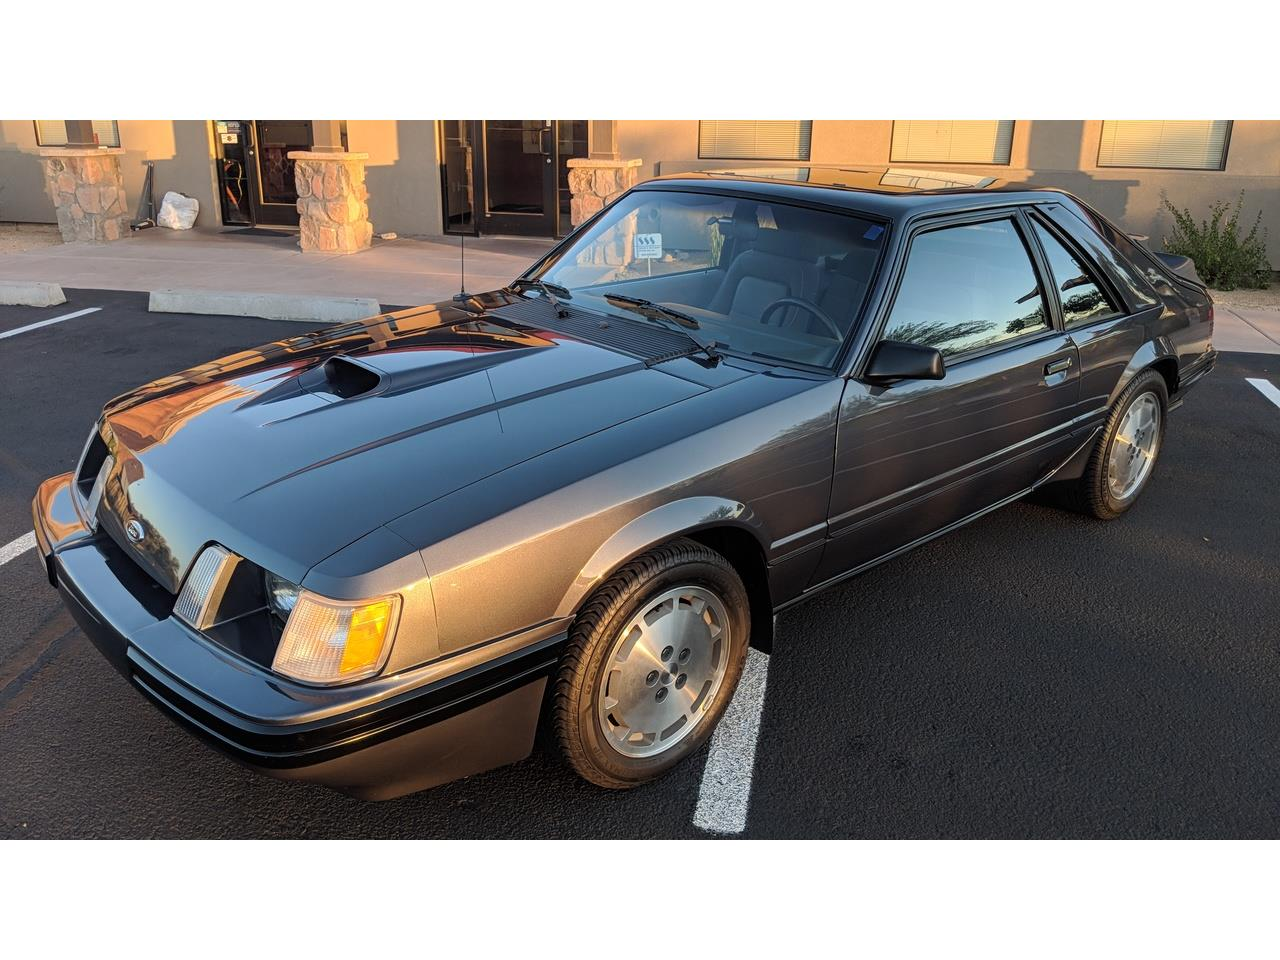 Large picture of 84 mustang svo mxz6